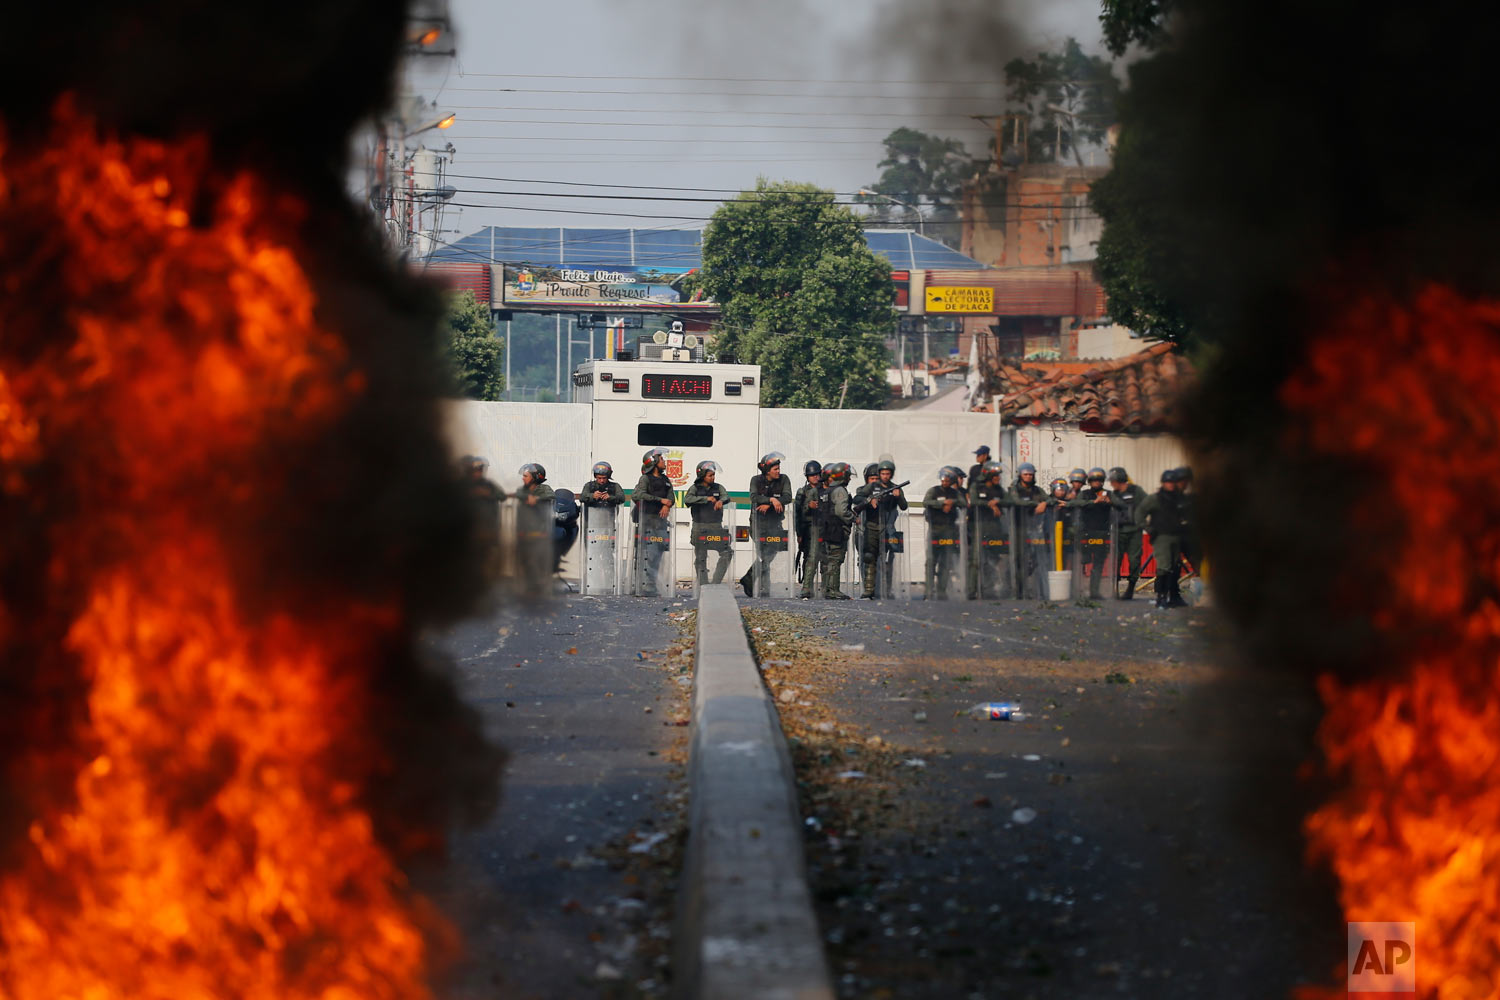 Bolivarian National Guard troops man a barricade blocking access to the Francisco De Paula Santander international bridge in Urena, Venezuela, on the border with Colombia, Feb. 23, 2019. (AP Photo/Fernando Llano)